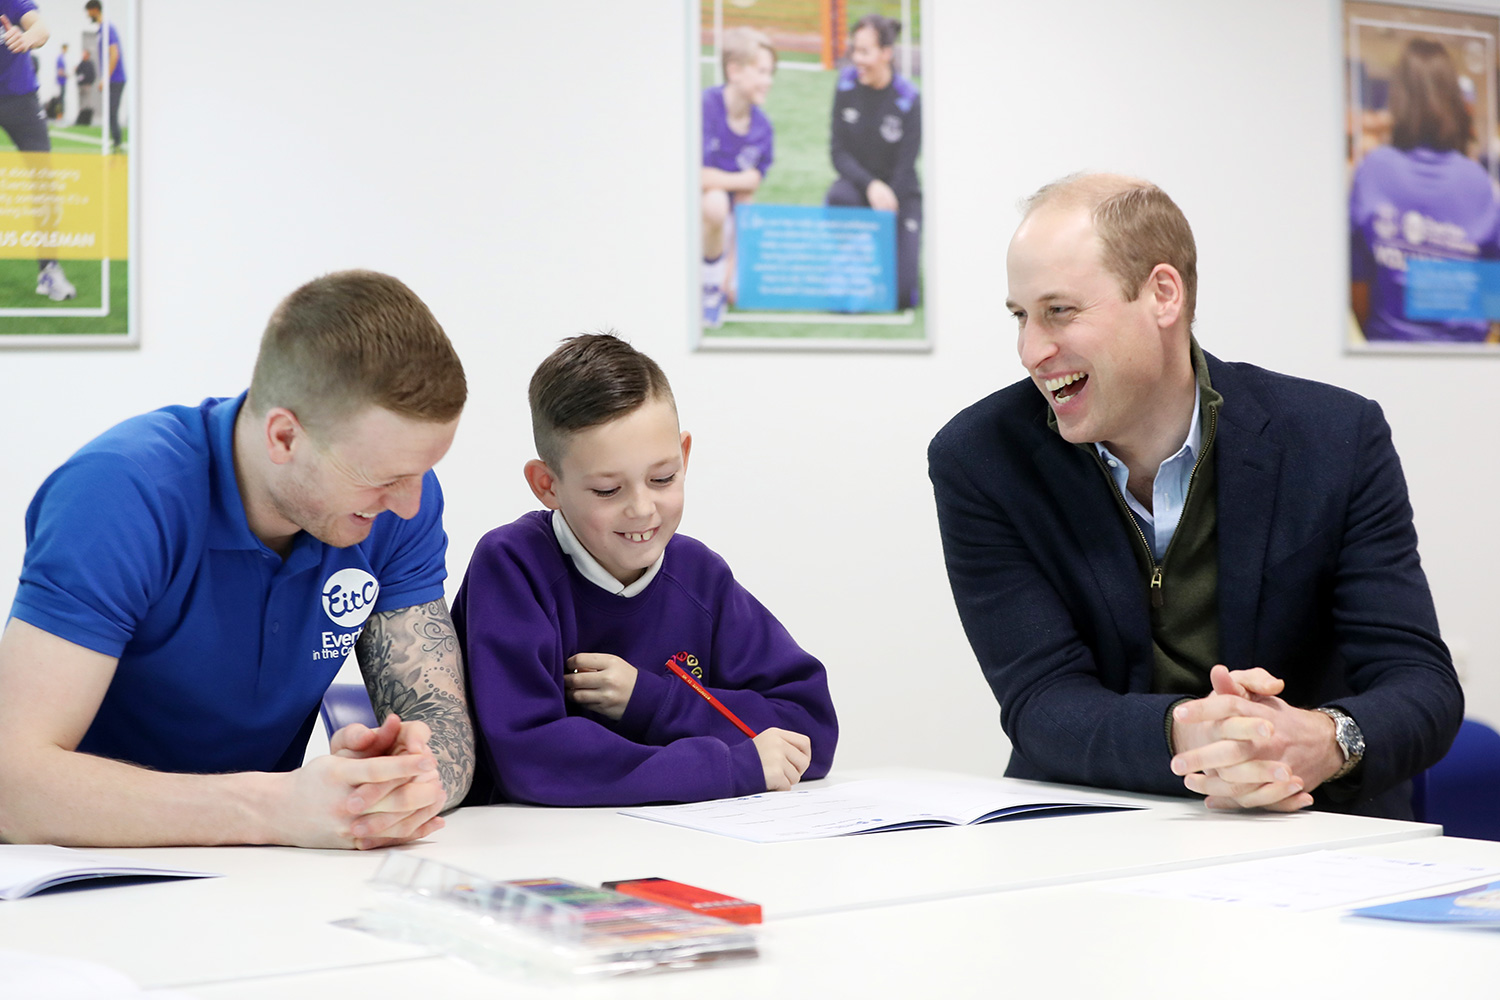 Prince William, Duke of Cambridge plays Emoji Bingo with kids of Springwell Park Community Primary School during his visit at Everton Football Club's official charity Everton in the Community as part of the Heads Up campaign on January 30, 2020 in Liverpool